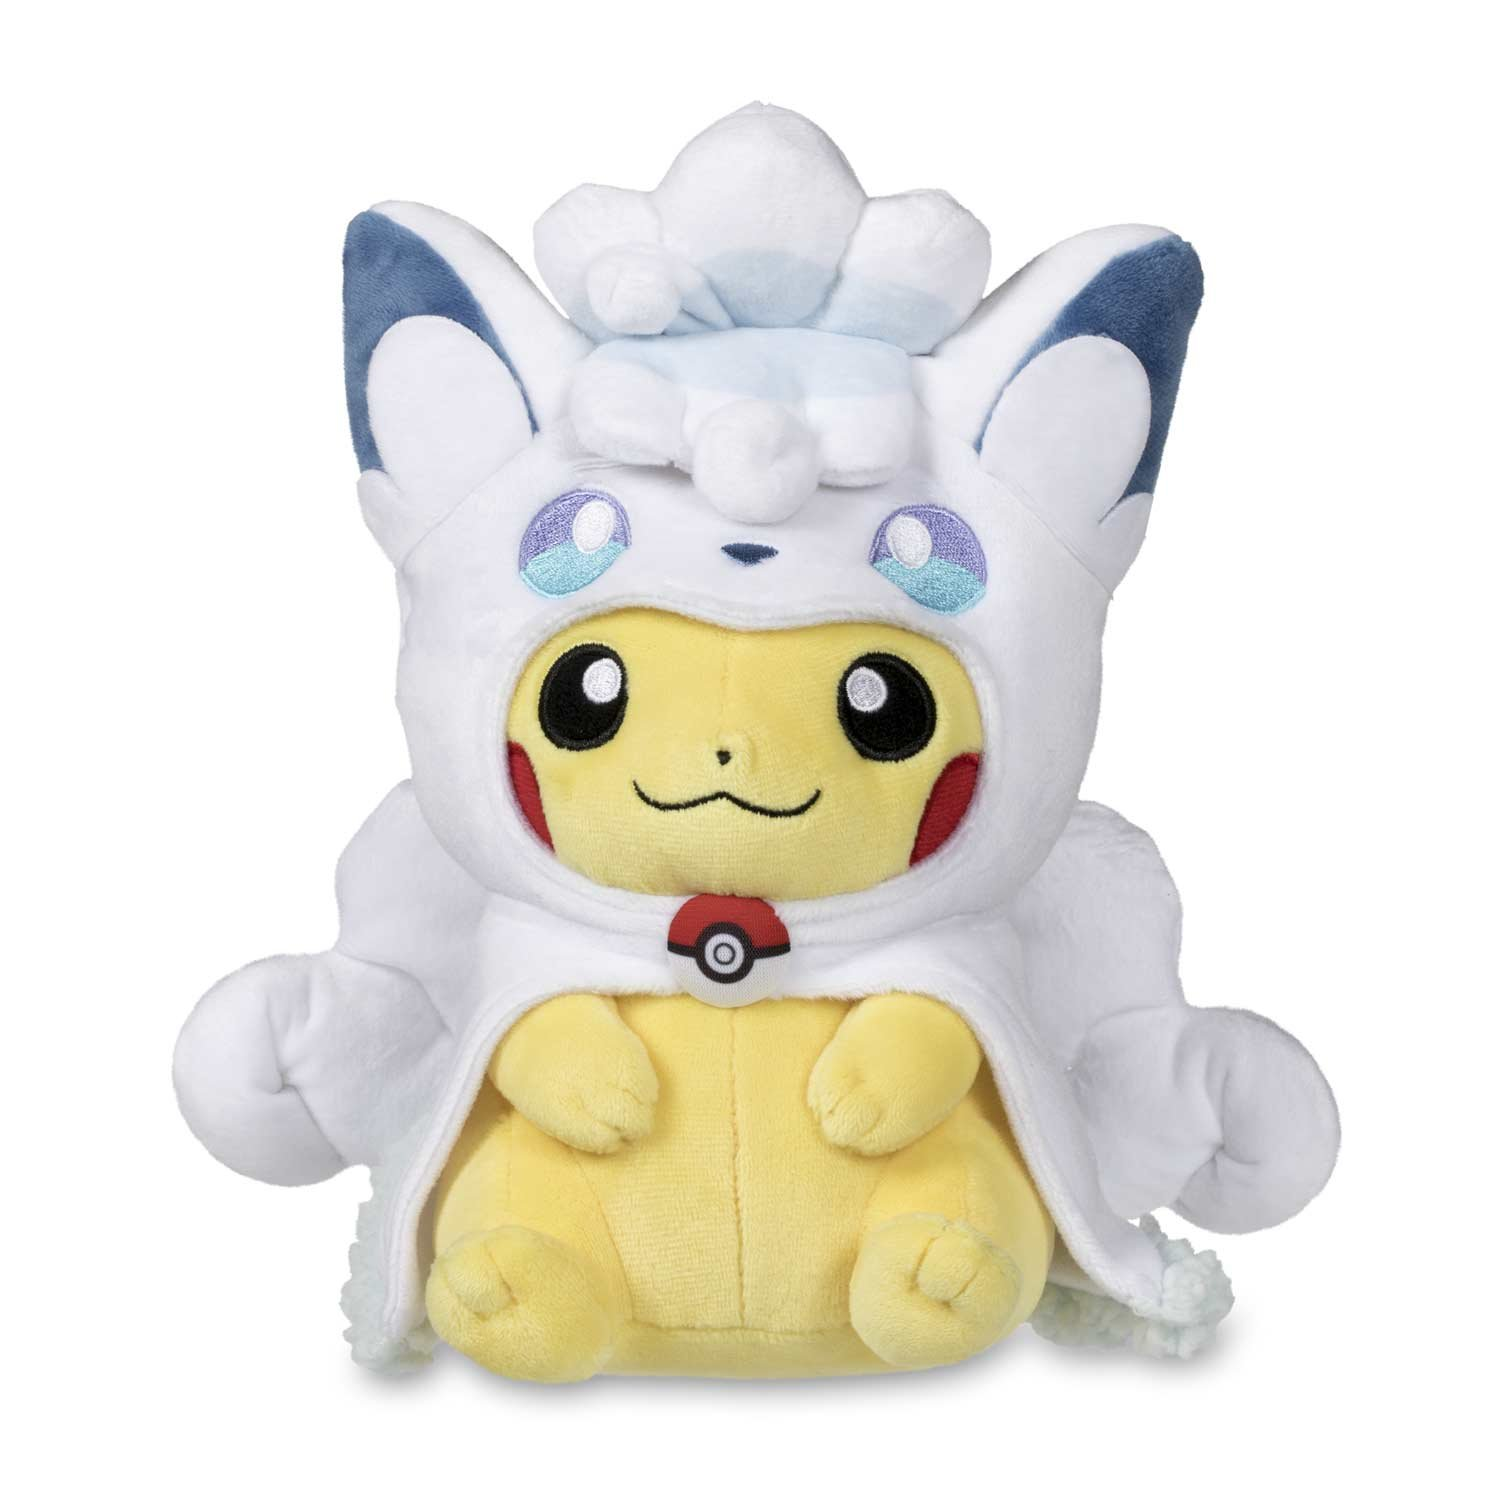 Amazon.com: Pokemon Center Alolan Vulpix Cape Pikachu Poké Plush (Standard) - 8.5